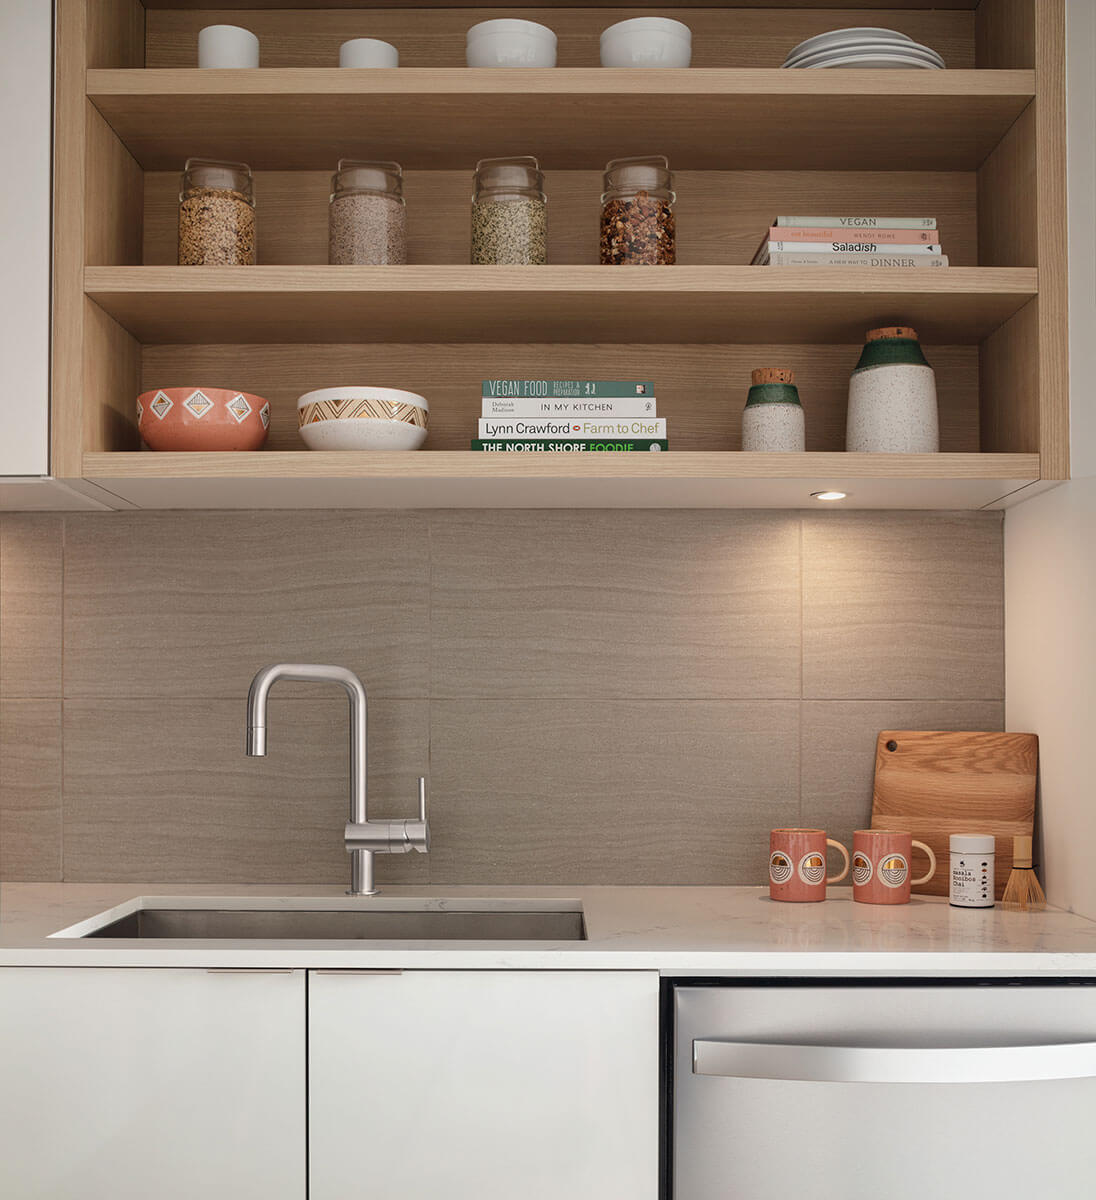 marine and fell kitchen shelving